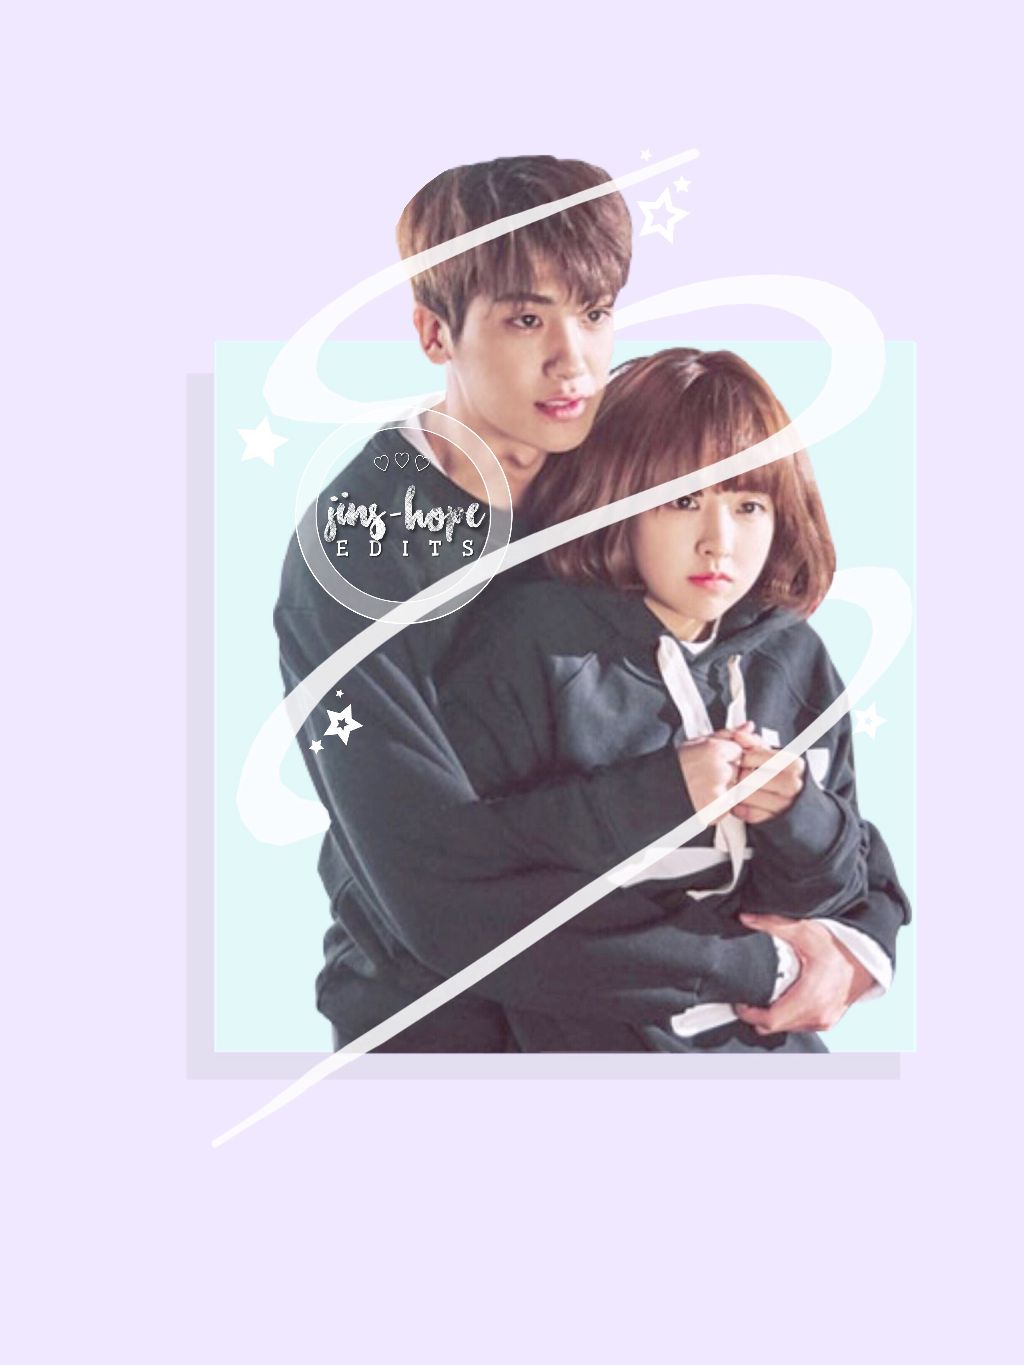 strong woman do bong soon requested by @jetleijehorst ♡ requests open! ☆ have a question about my edits? check my bio for a list of faq's before you ask! ☆  #strongwomandobongsoon #parkhyungsik #parkboyoung #kdrama #pastel #kpopedits